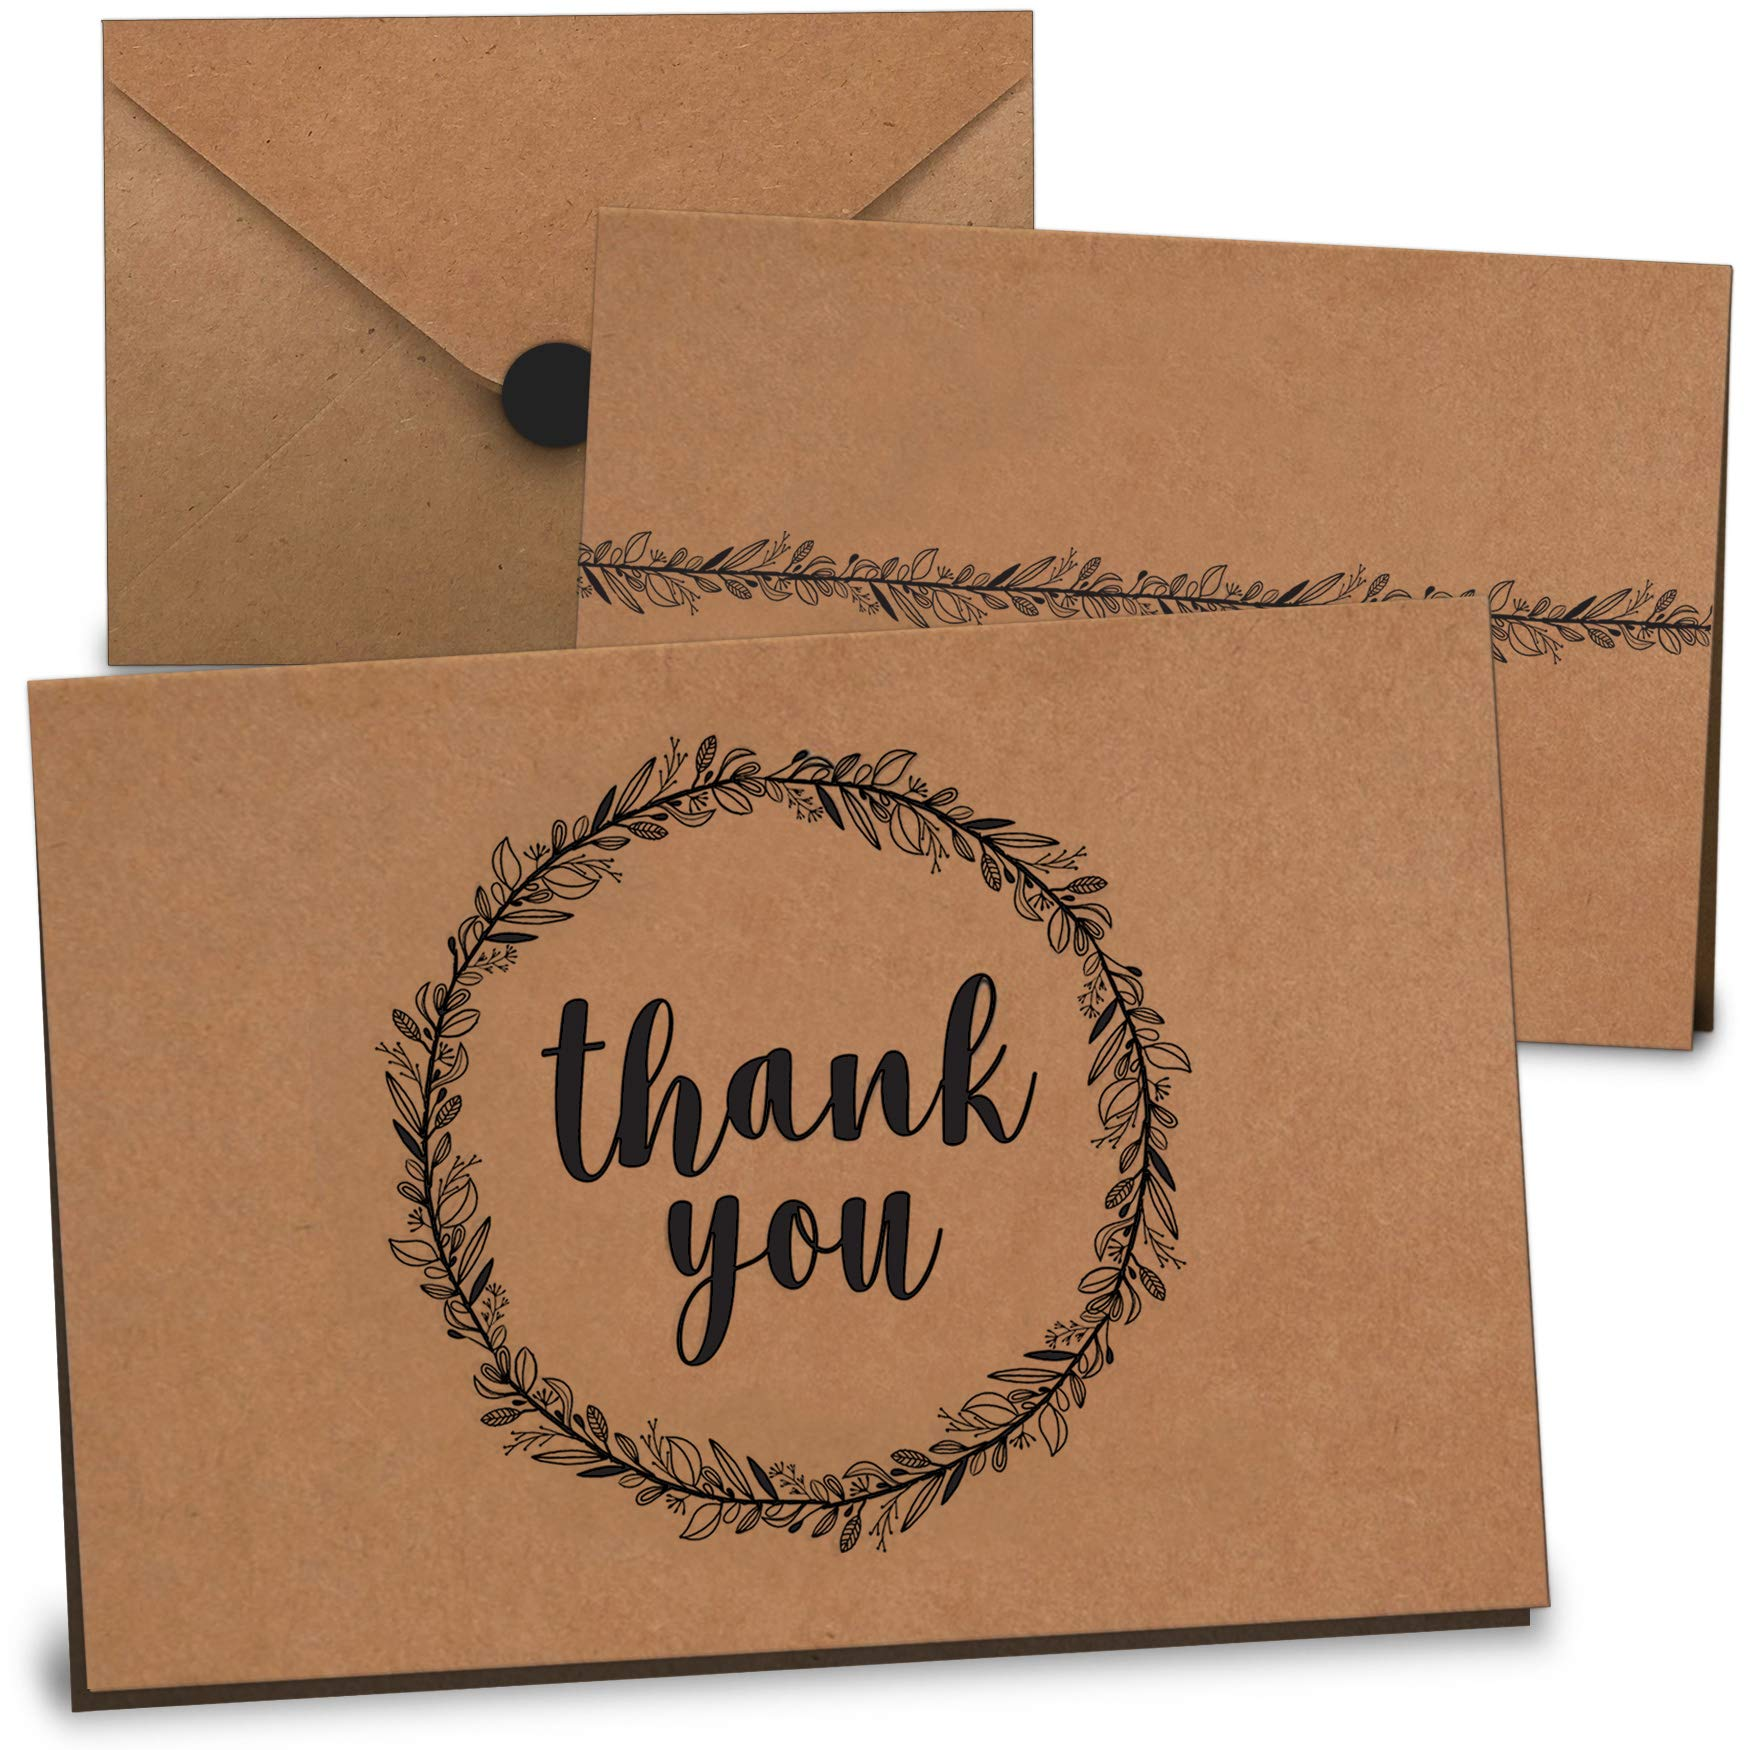 Thank You Cards Bulk Set of 100 - Includes Thank You Notes, Blank Cards with Envelopes & Stickers - Perfect for Business, Wedding, Graduation, Bridal & Baby Shower, Funeral - Floral Kraft Paper Design